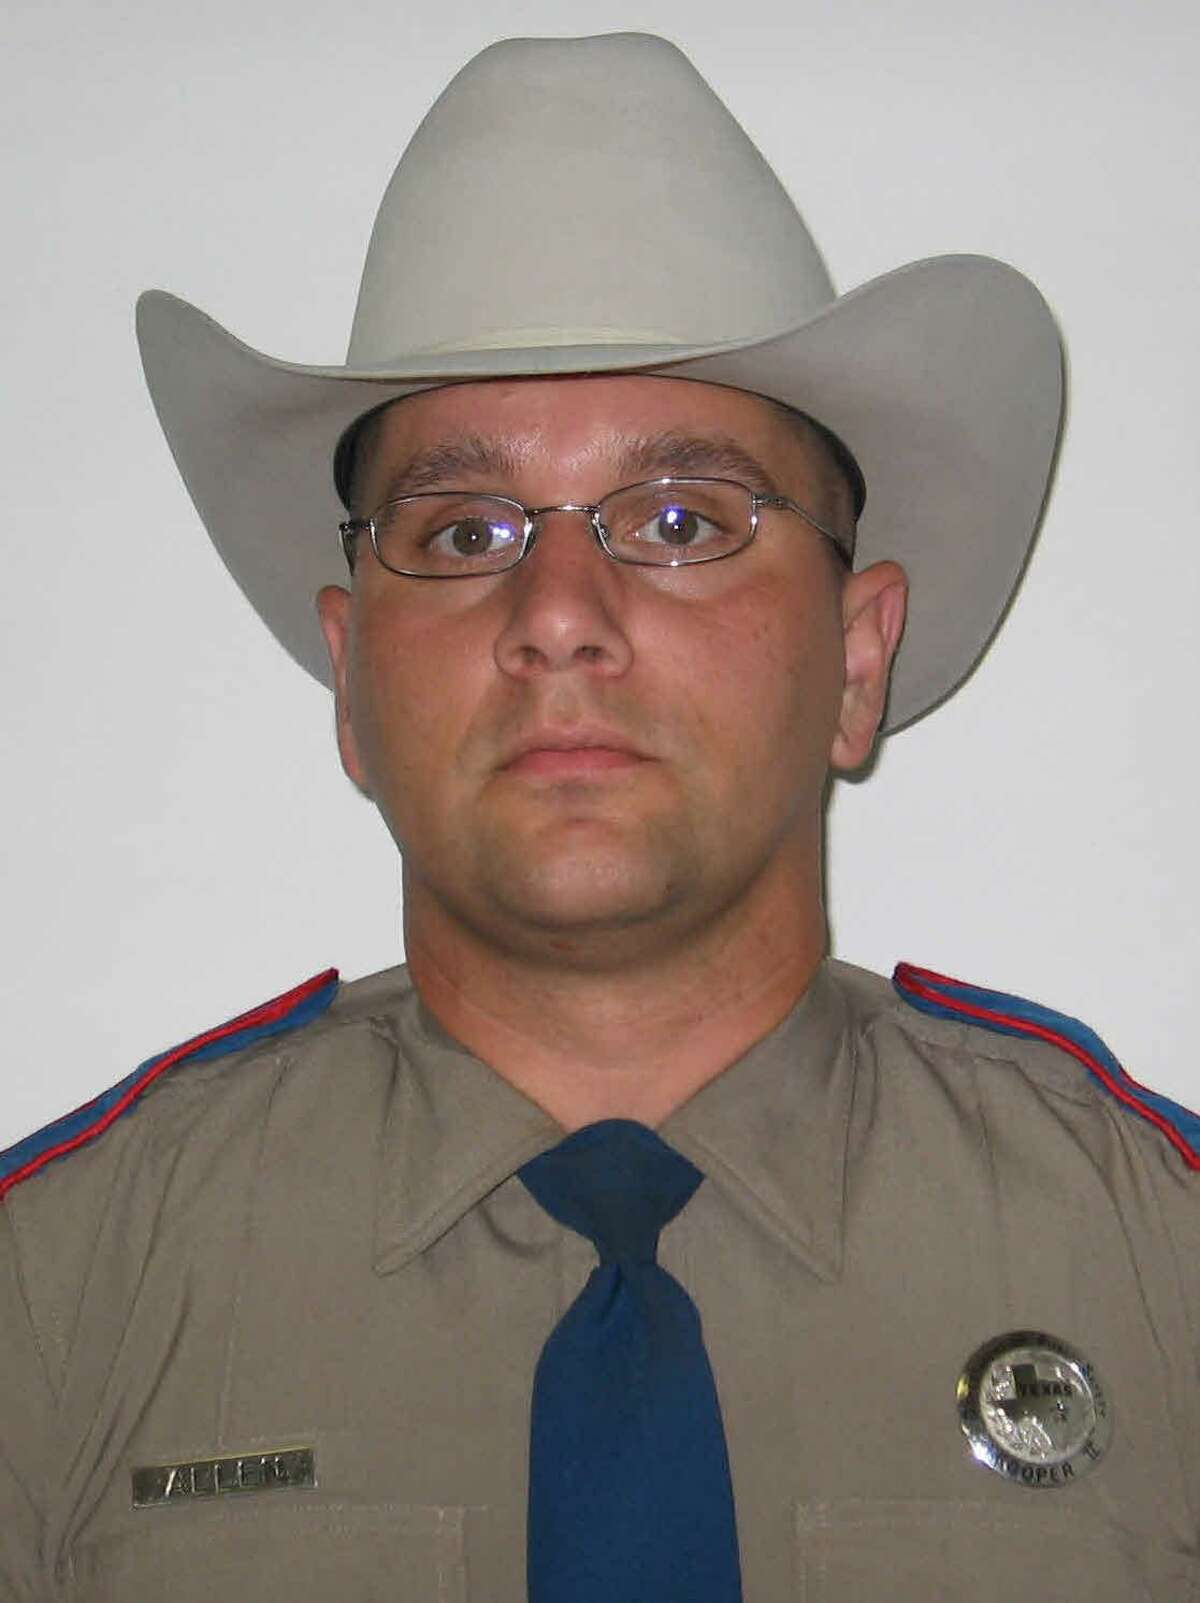 This undated image released by the Texas Department of Public Safety shows DPS Trooper Damon Allen who was killed on Thanksgiving, Nov. 23, 2017, while making a traffic stop in East Texas. Dabrett Black, 32, was charged Friday with capital murder. (Texas Department of Public Safety via AP)